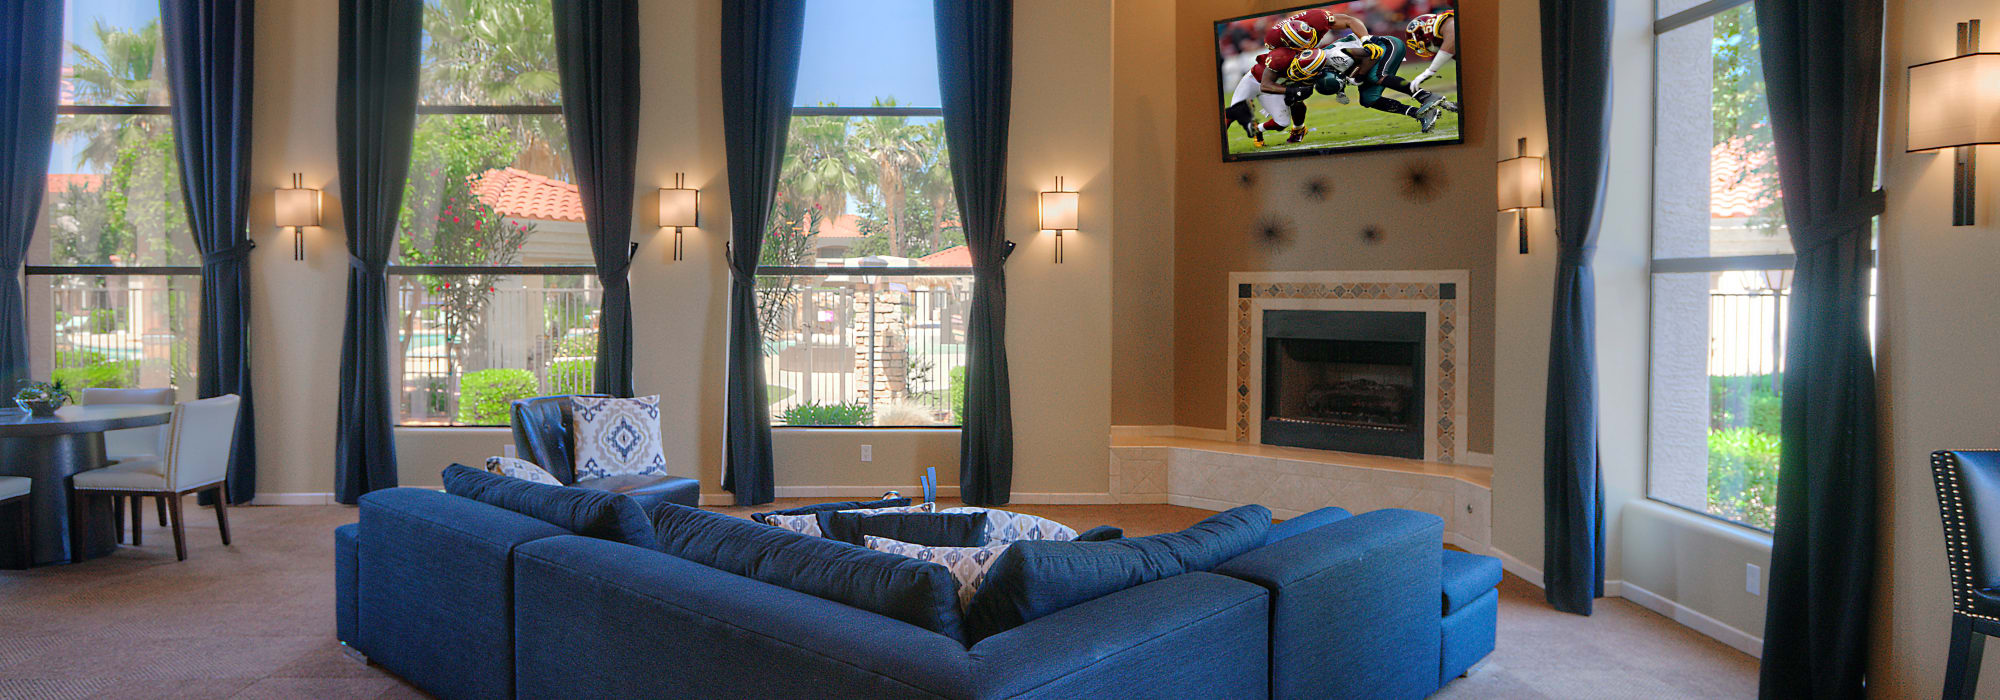 Spacious clubhouse to entertain friends and family at San Cervantes in Chandler, Arizona